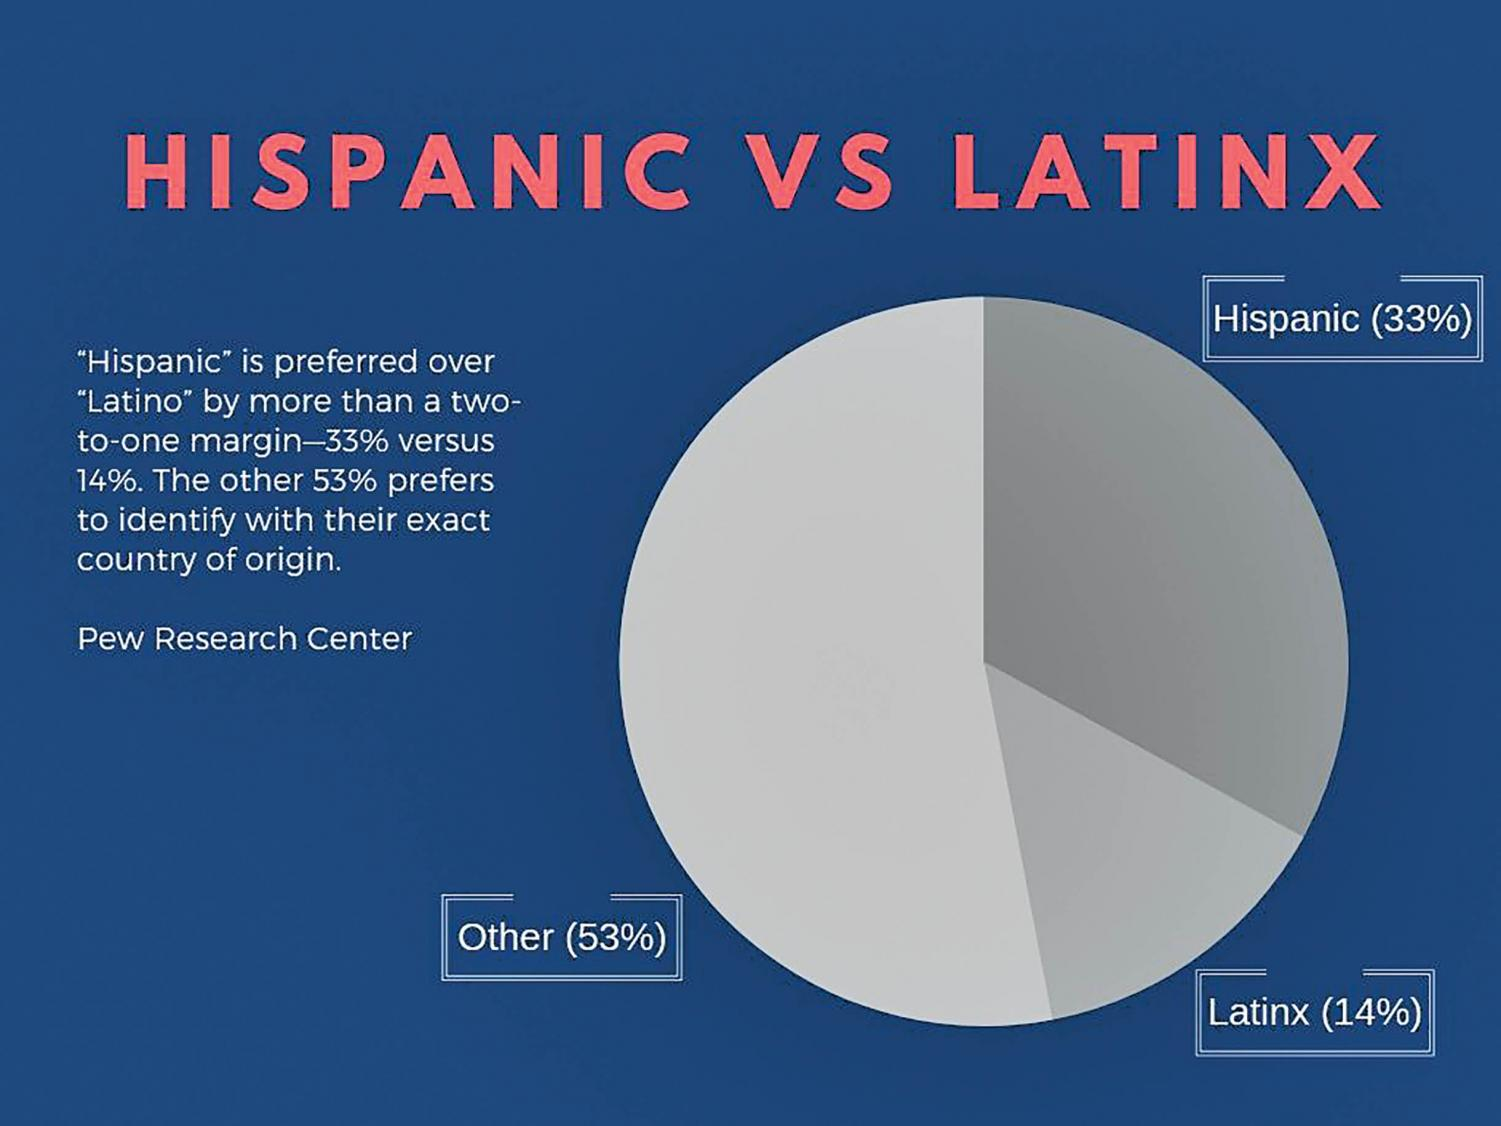 The estimated total population of Hispanics and Latinxs in the U.S. is 58,846,134.